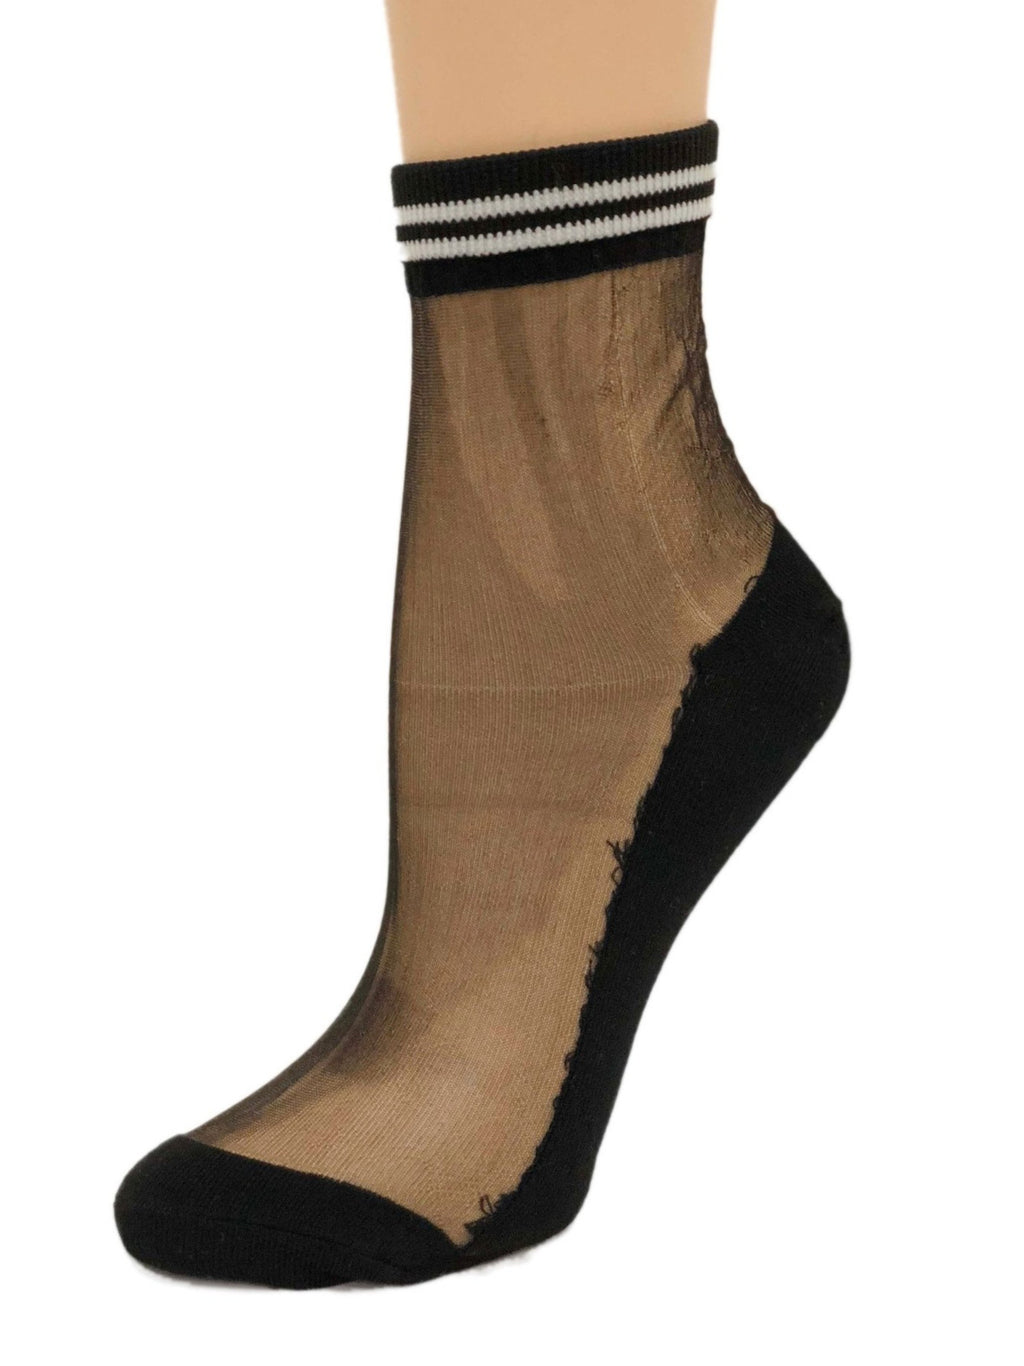 Twin Striped Sheer Socks - Global Trendz Fashion®